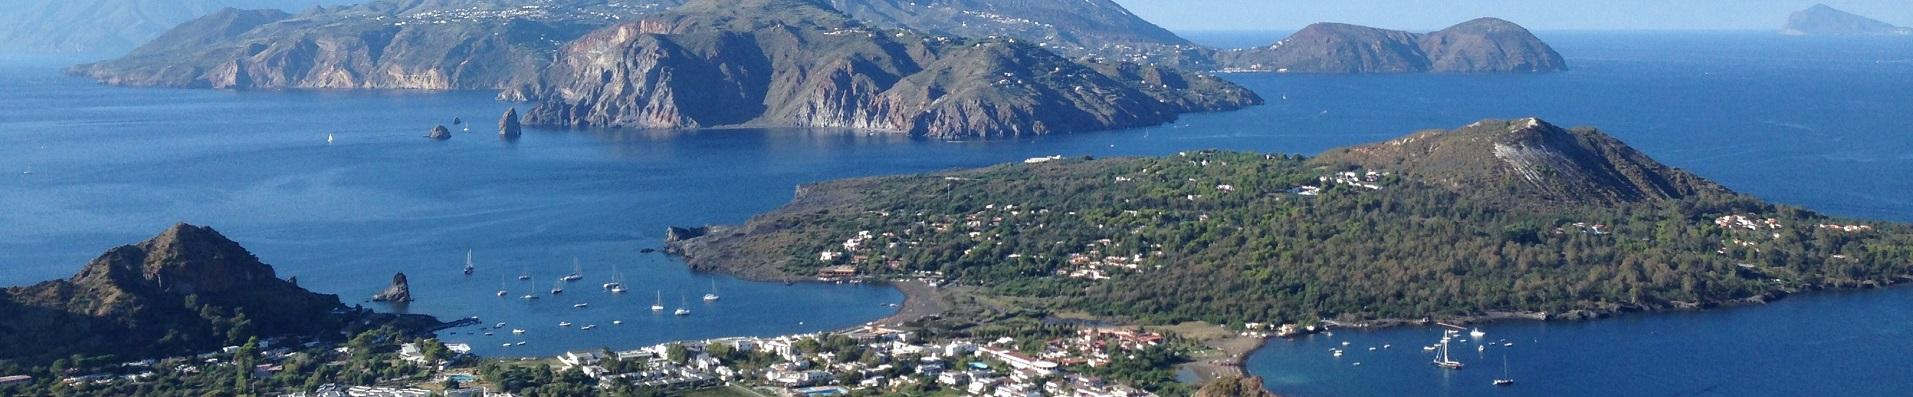 Villas and holiday homes on the Aeolian Islands